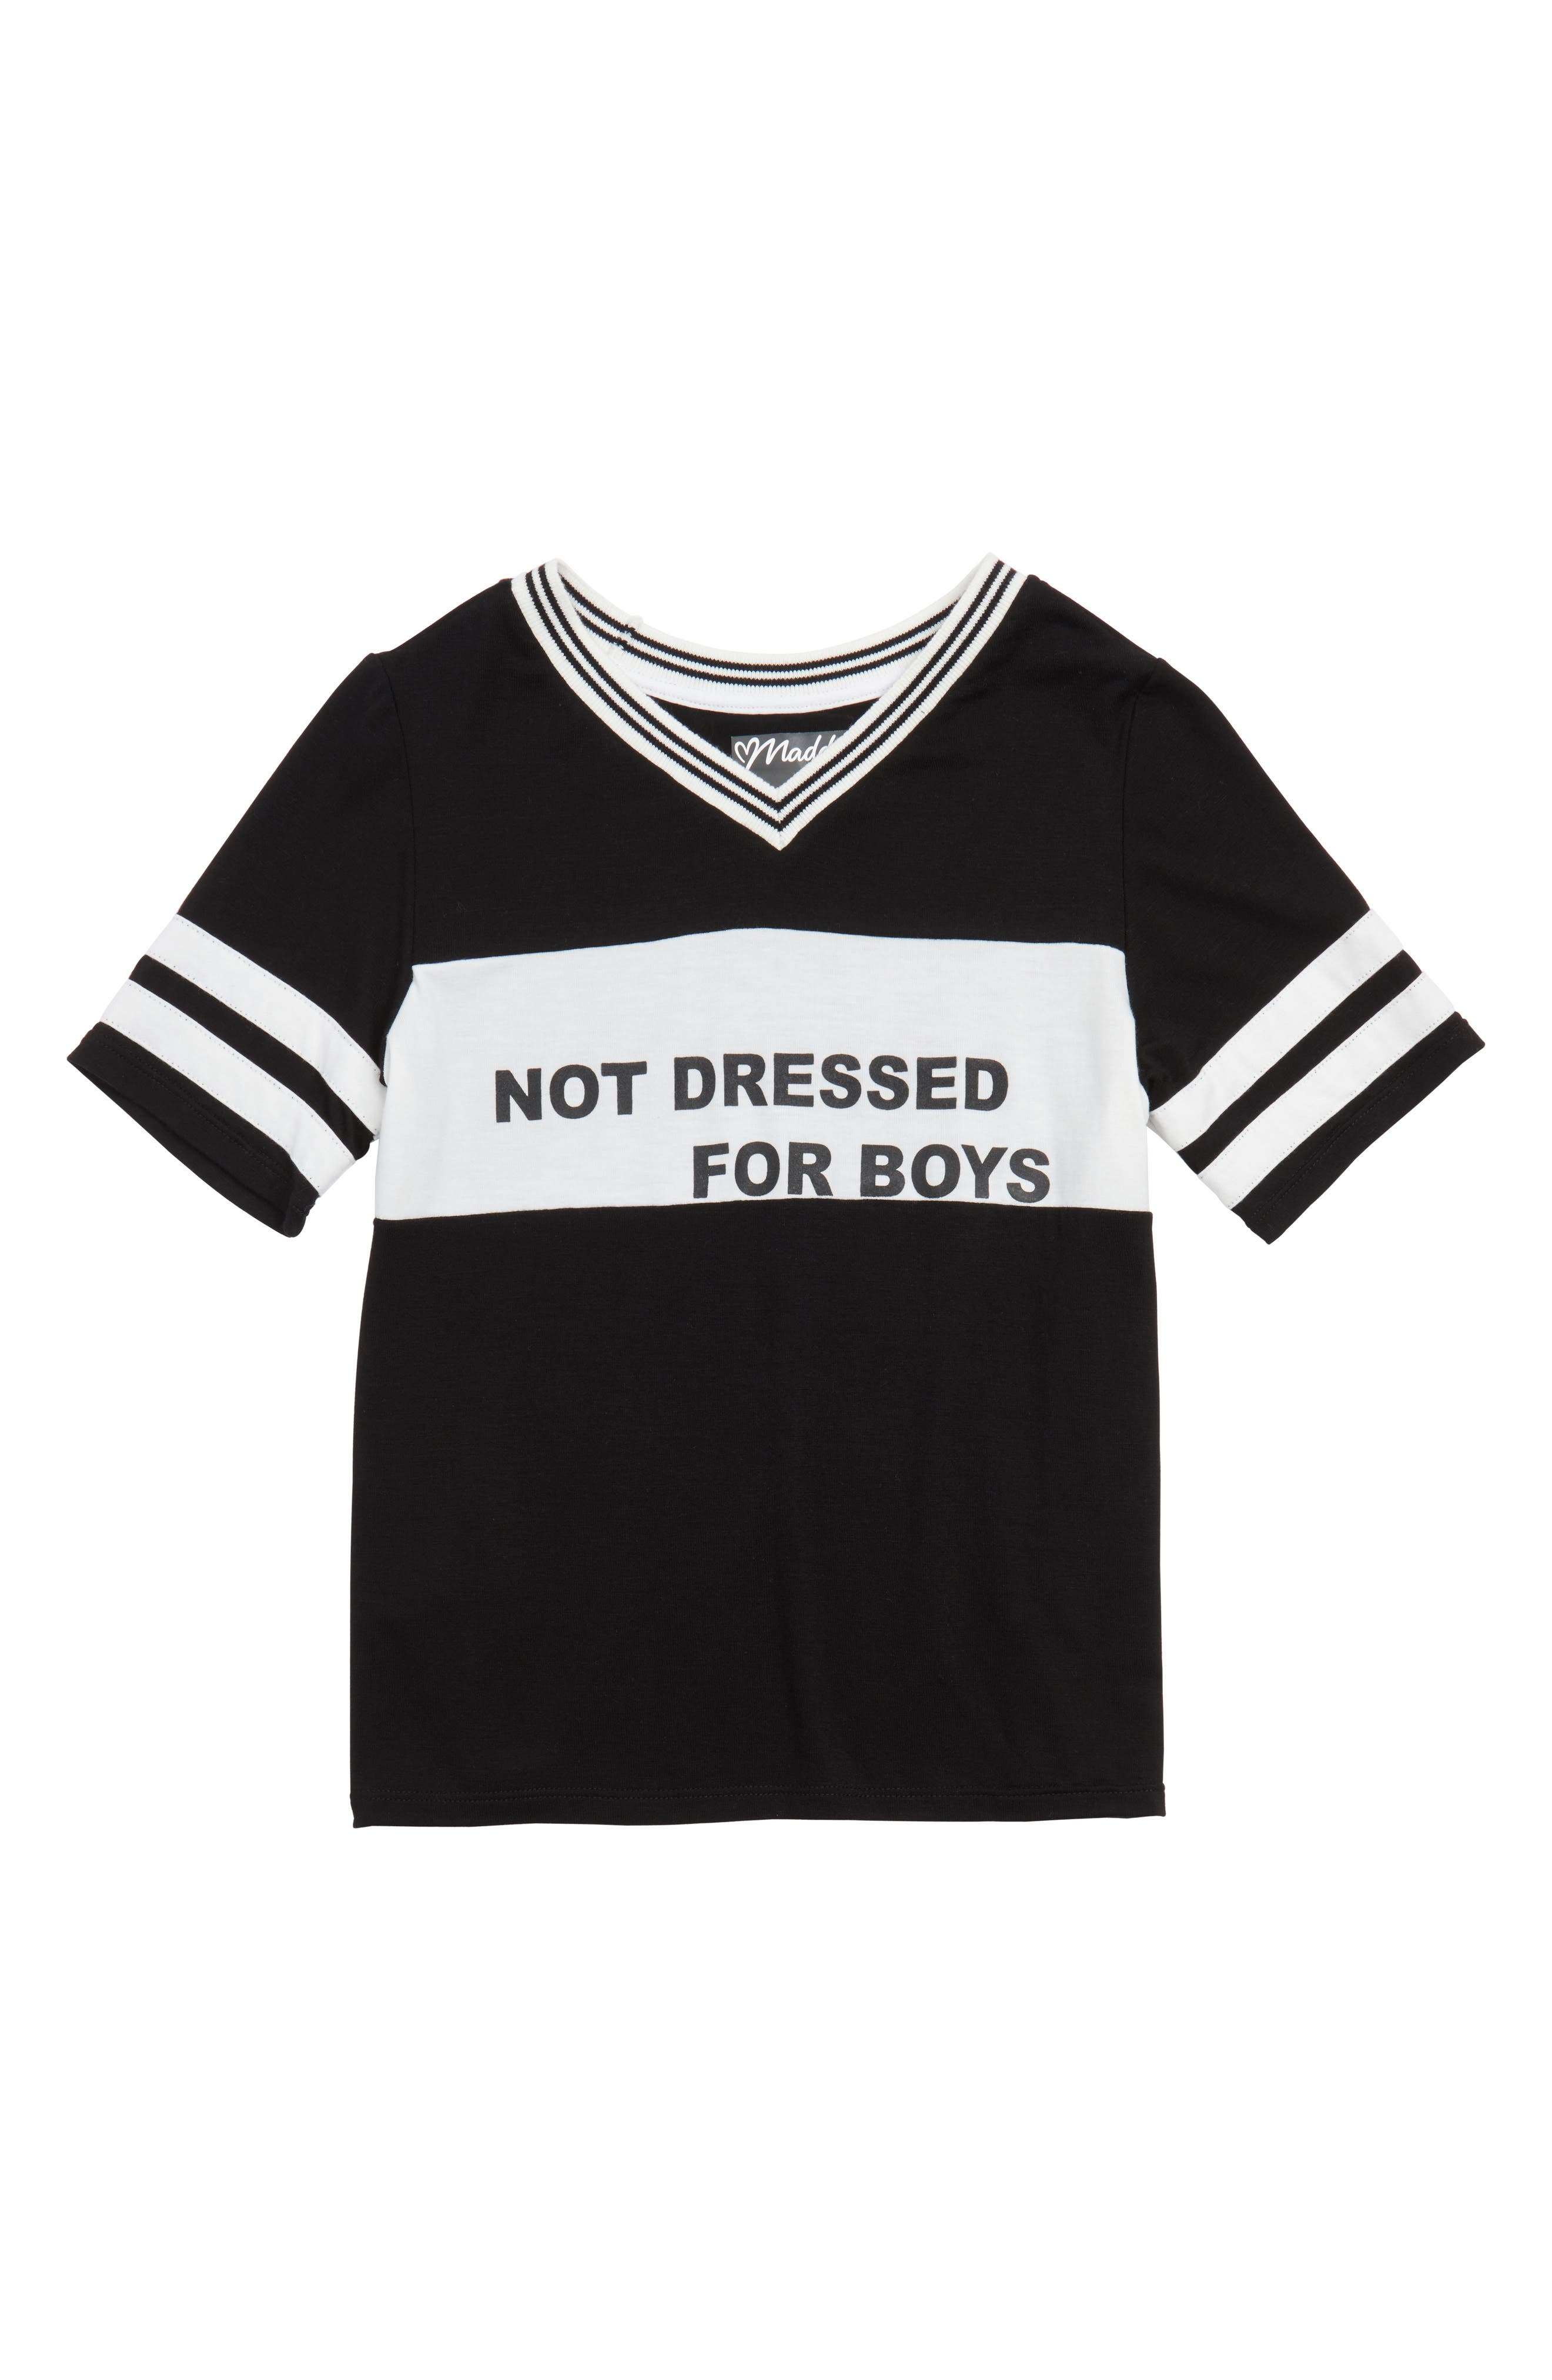 Not Dressed for Boys Tee,                             Main thumbnail 1, color,                             001